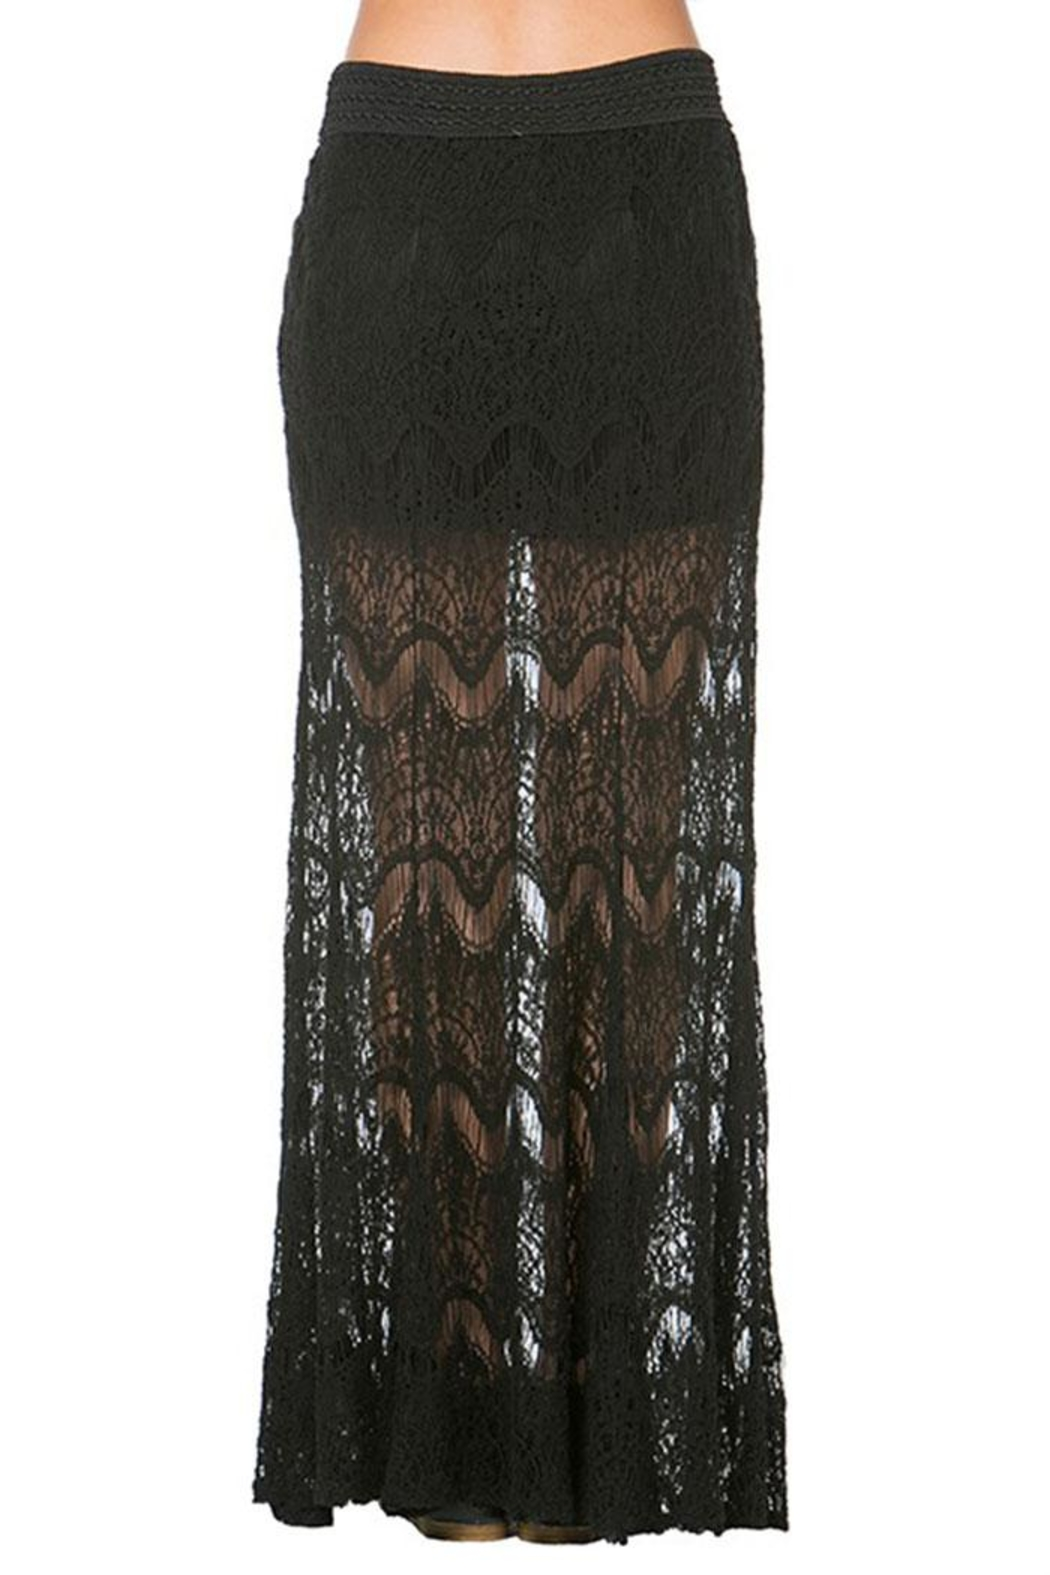 Mur Mur Lace Maxi Skirt - Side Cropped Image